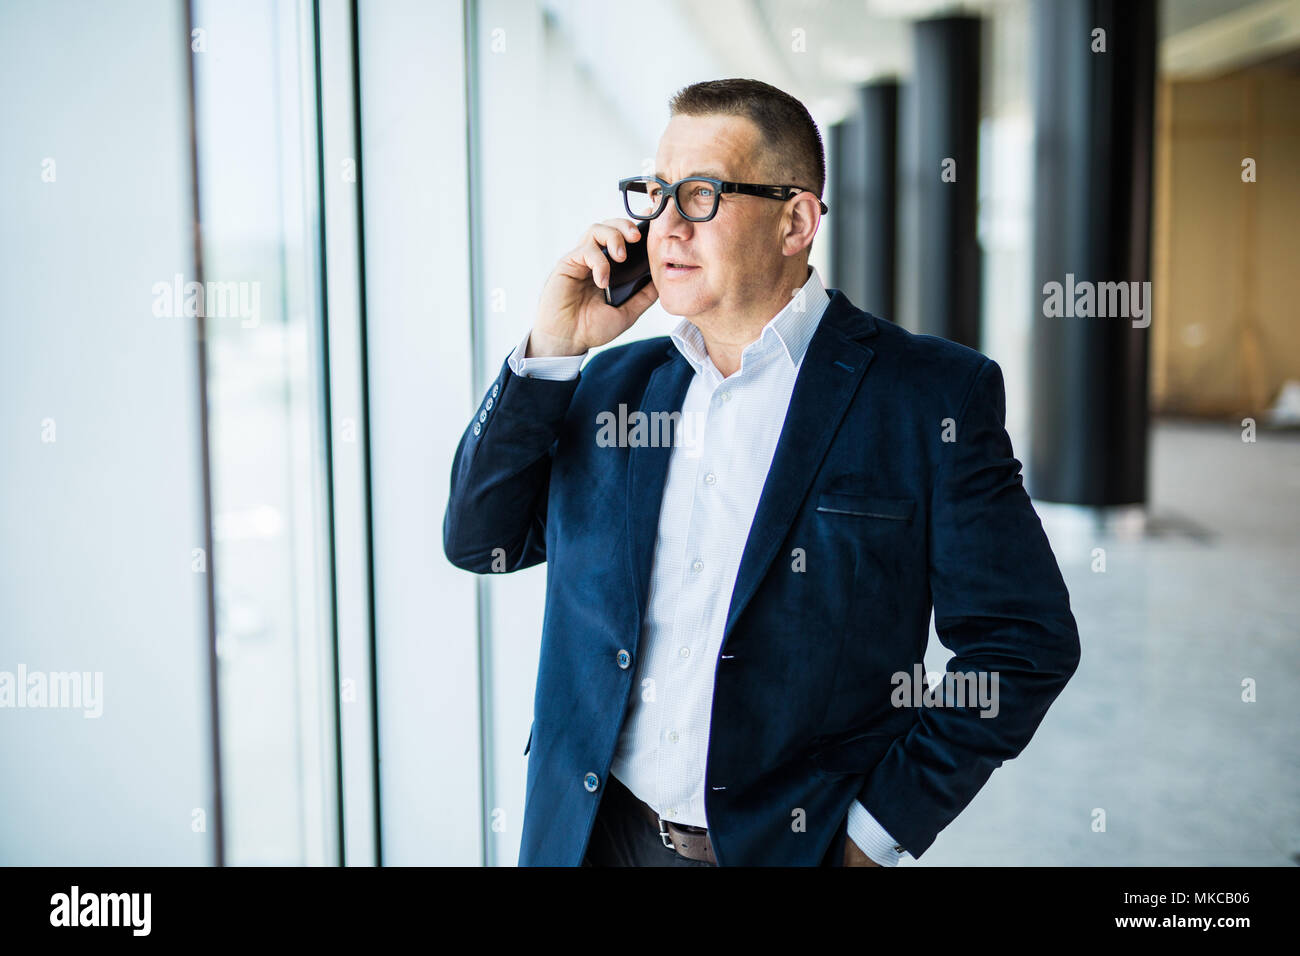 Smiling middle aged businessman using cellphone sitting in front of window overlooking cityscape - Stock Image